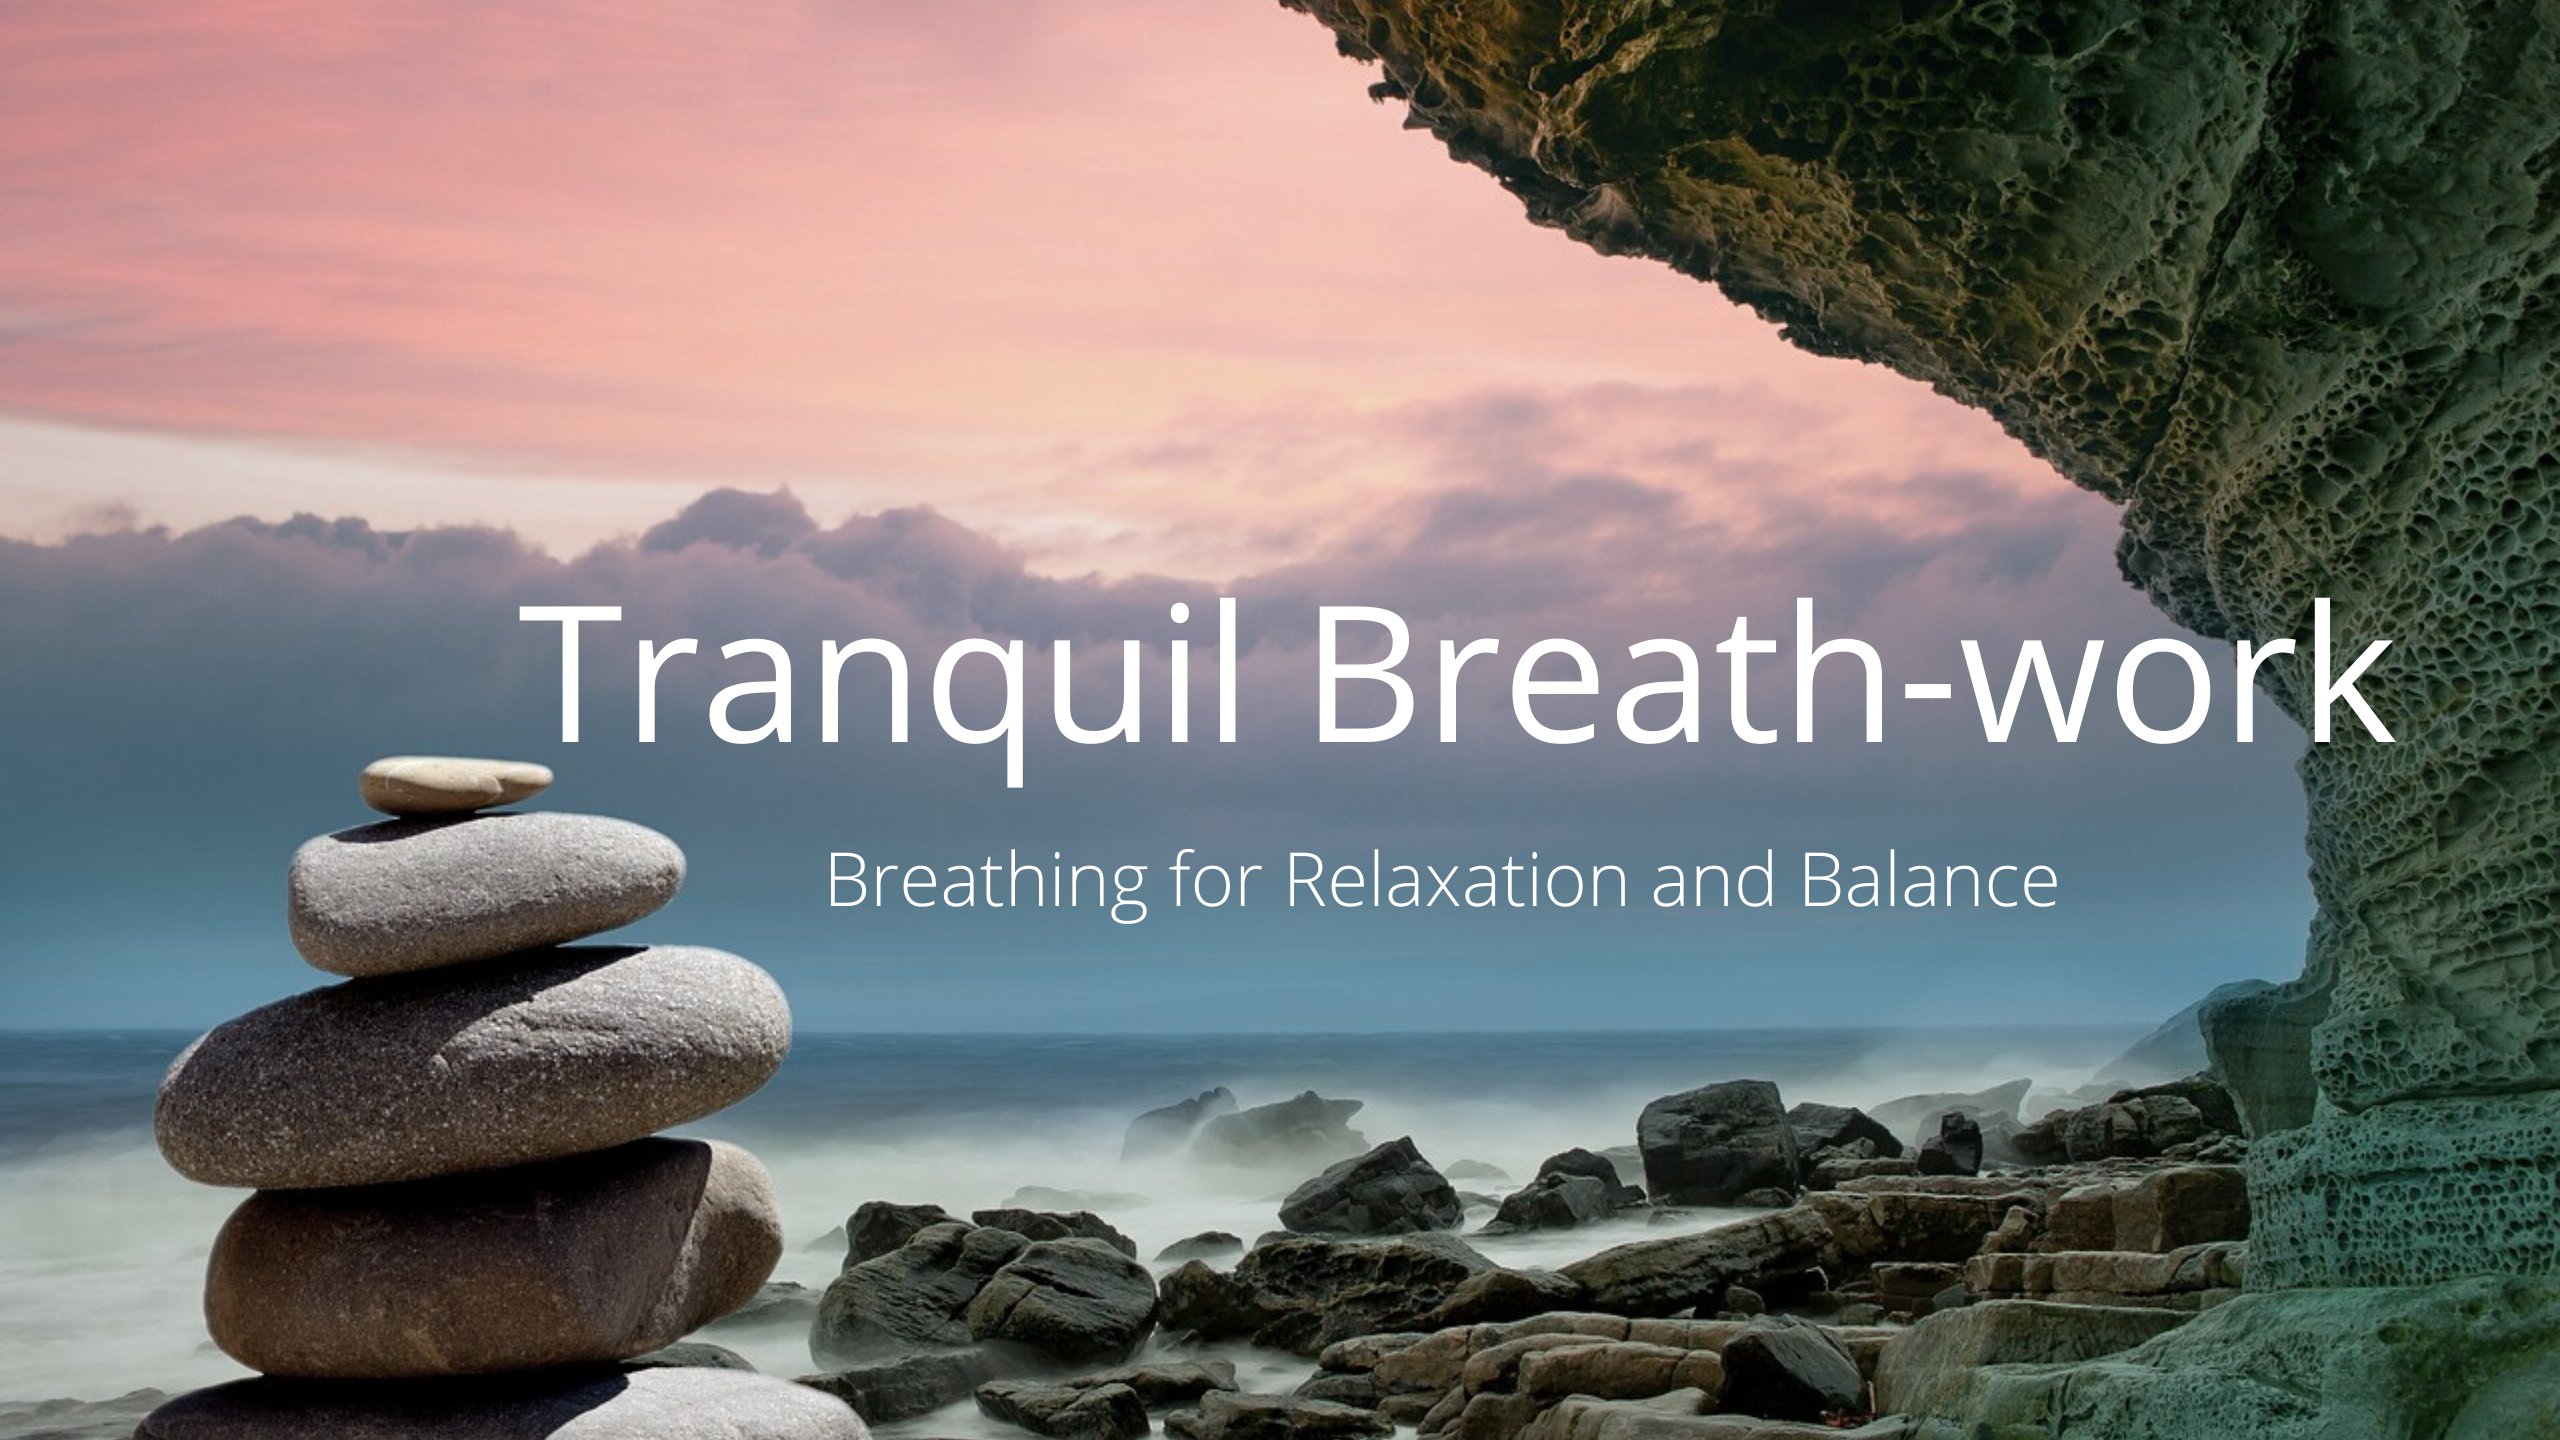 Tranquil Breath-work Course